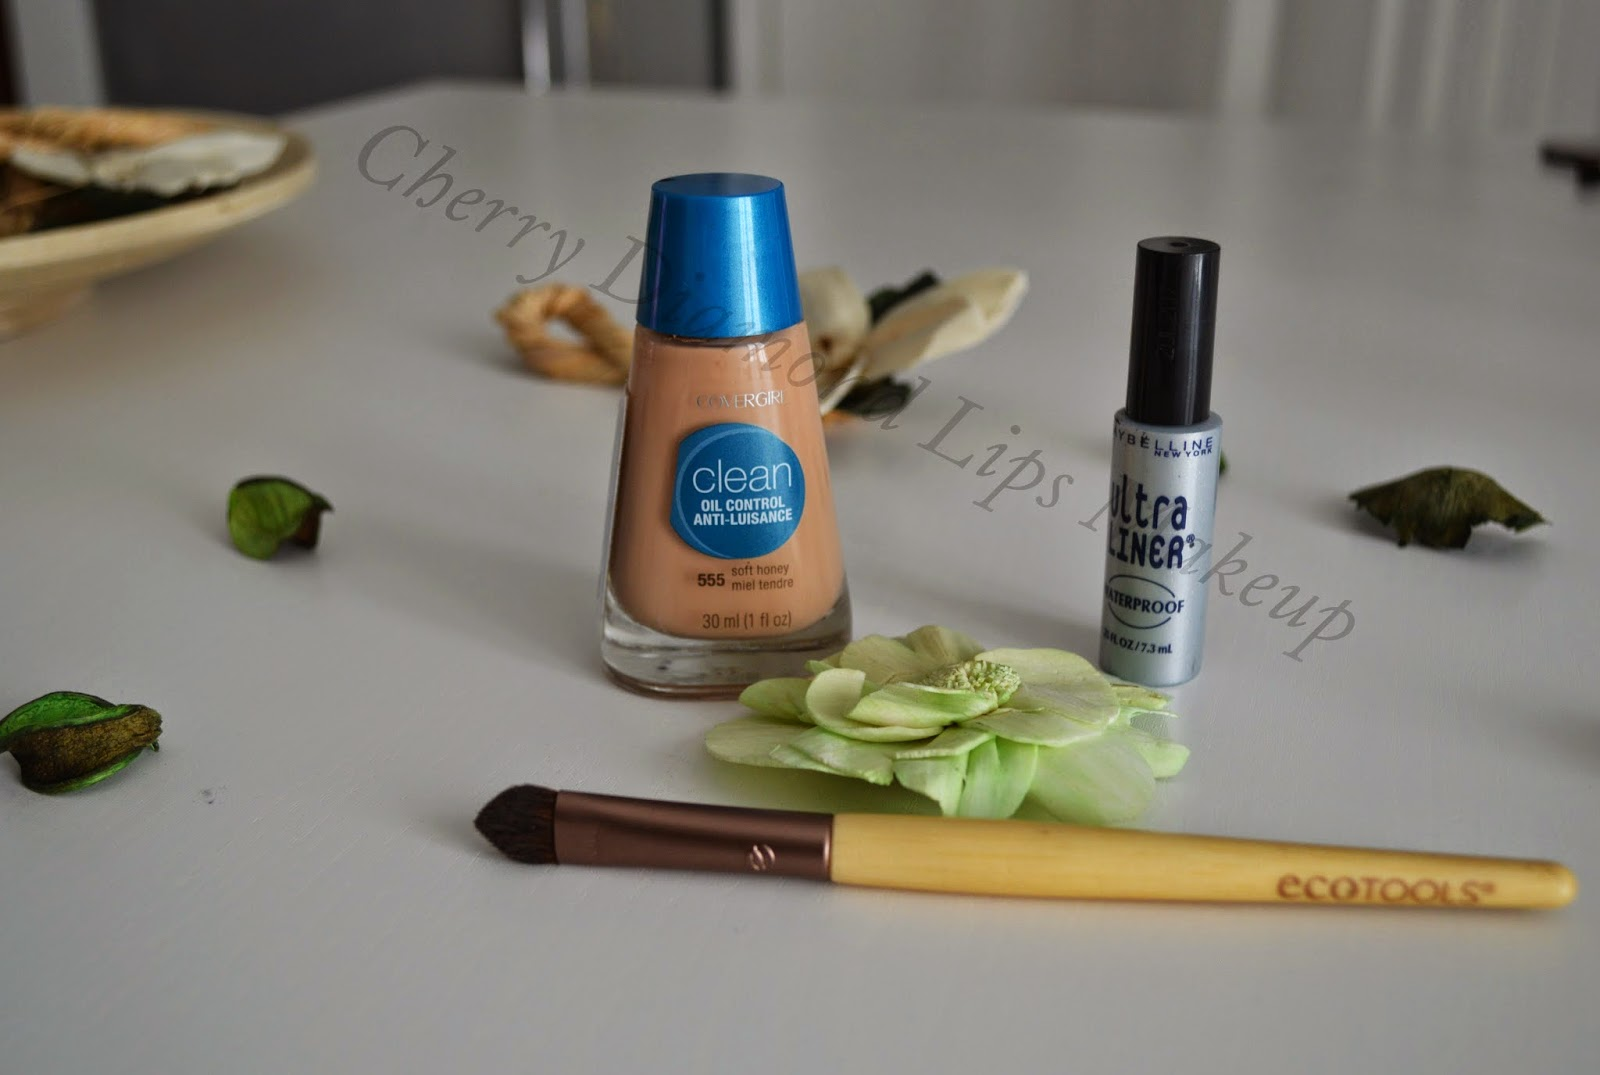 CoverGirl, Maybelline, Ultra Liner Waterproof, Ecotools, Clean Oil Control